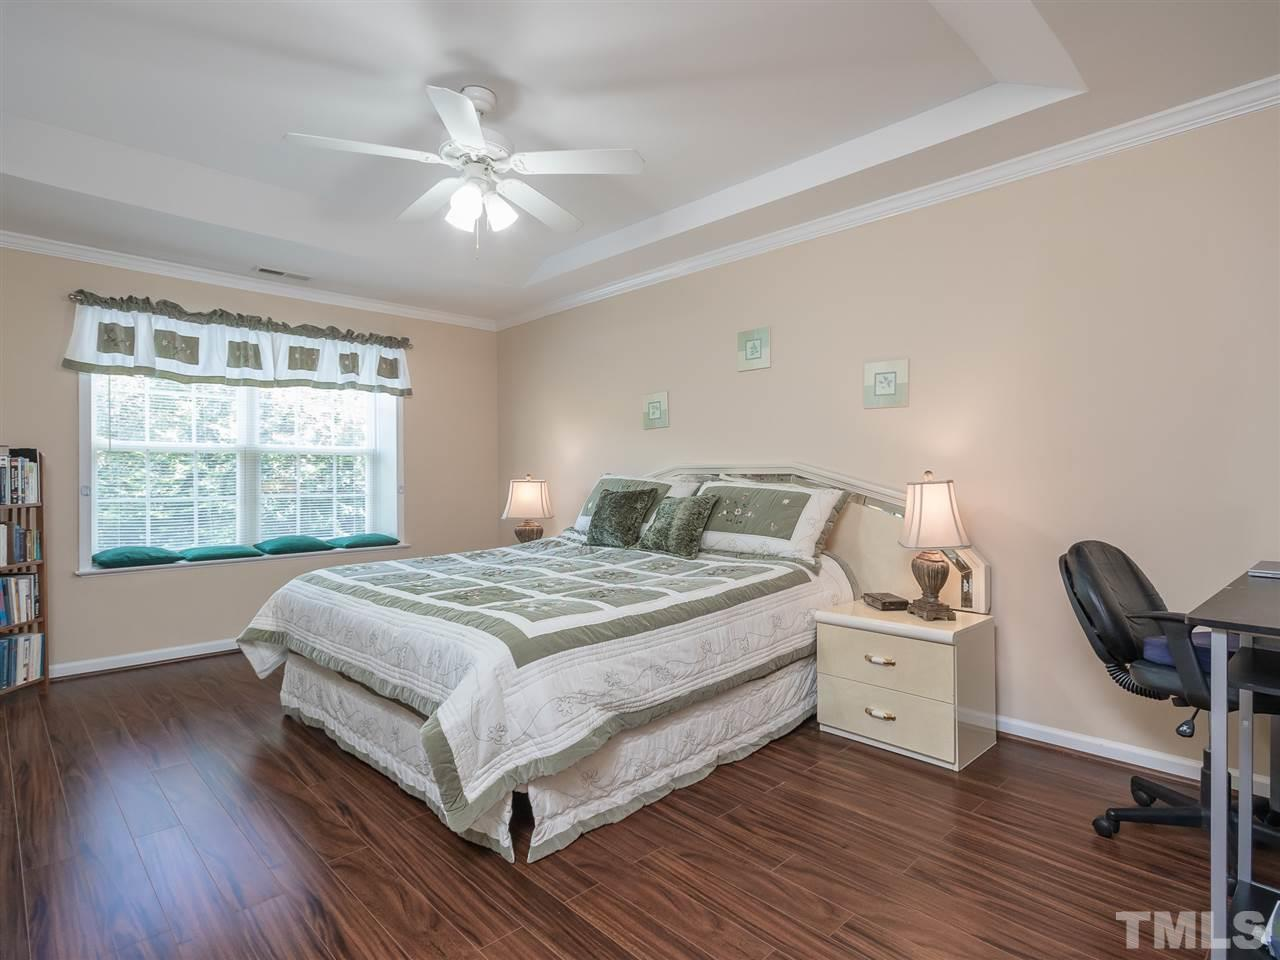 Now this is what I call a Master bedroom! Wood look flooring, fan, window seat, tray ceiling and moldings added for that custom touch!